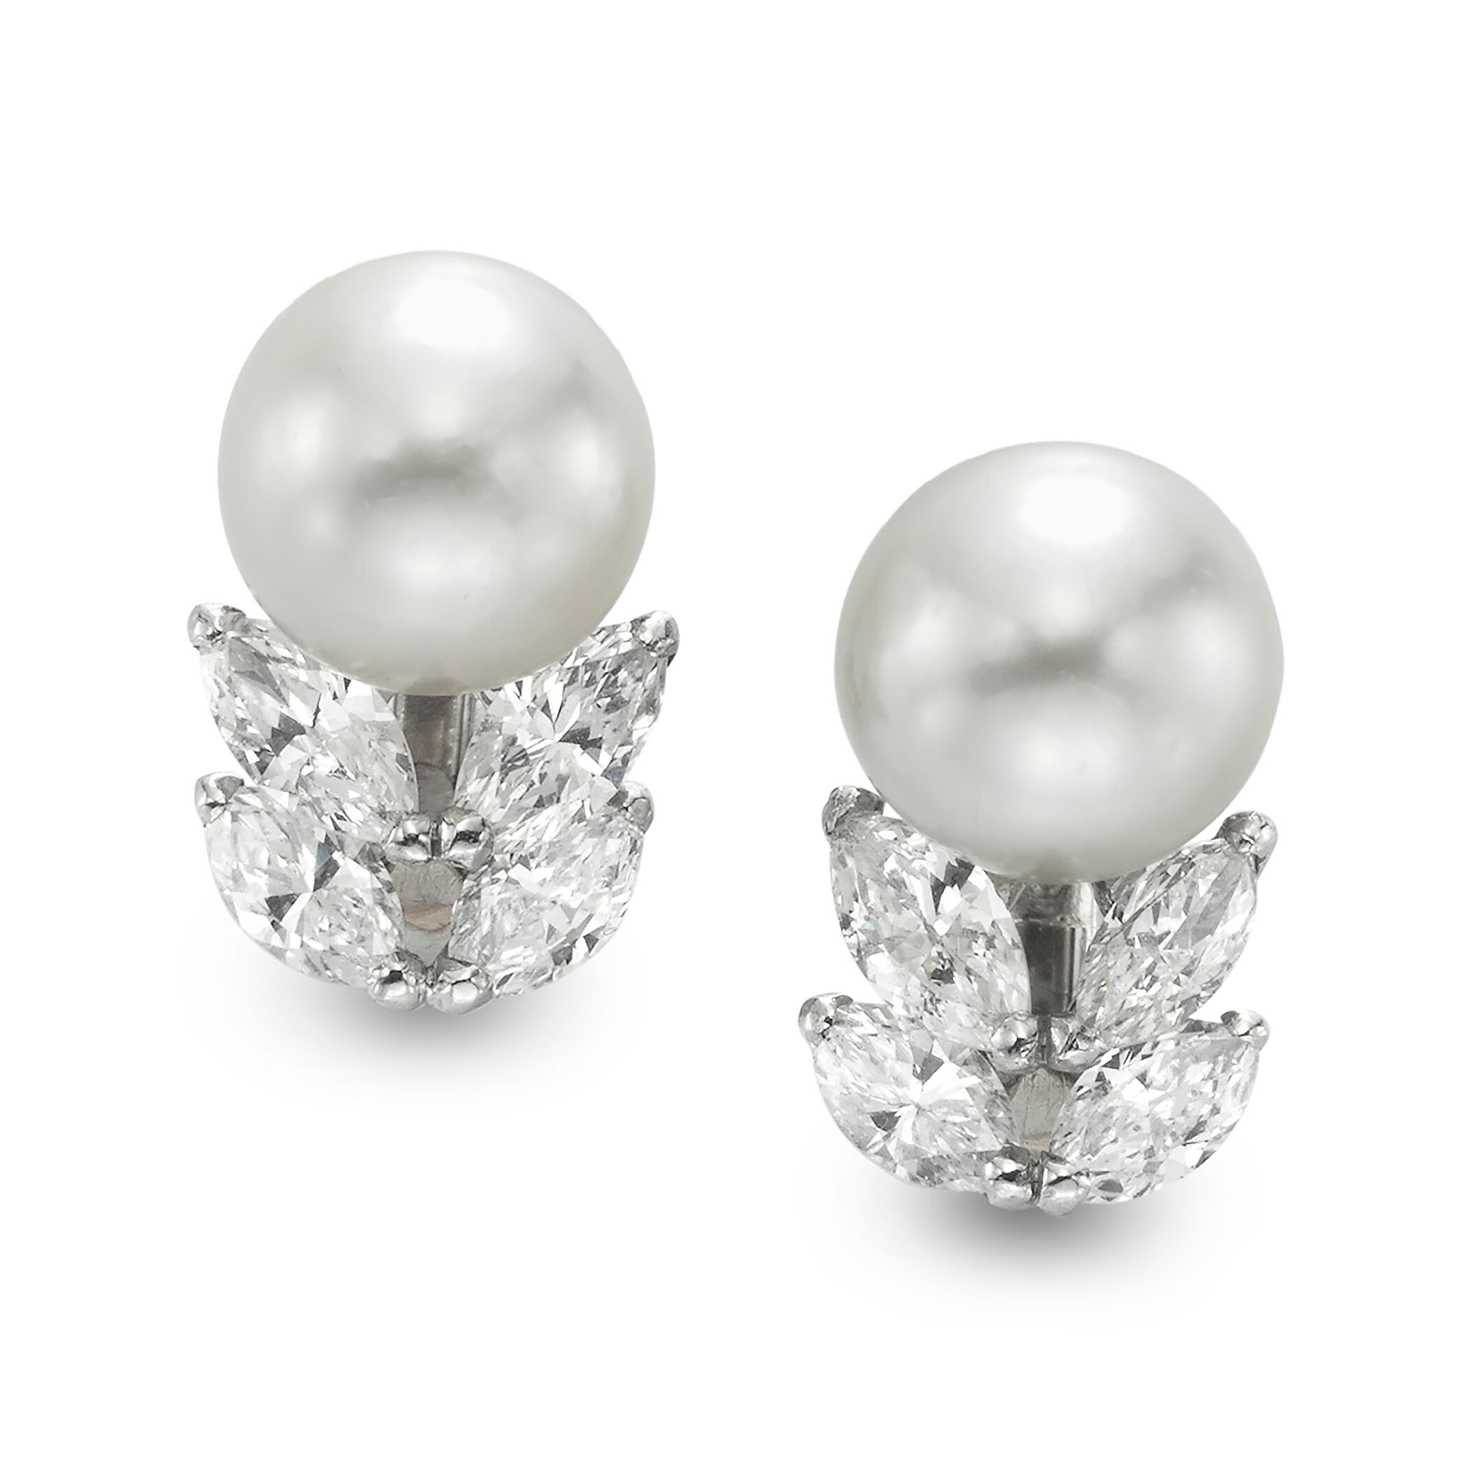 A Pair of Natural Pearl and Diamond Ear clips, by Cartier, circa 1950